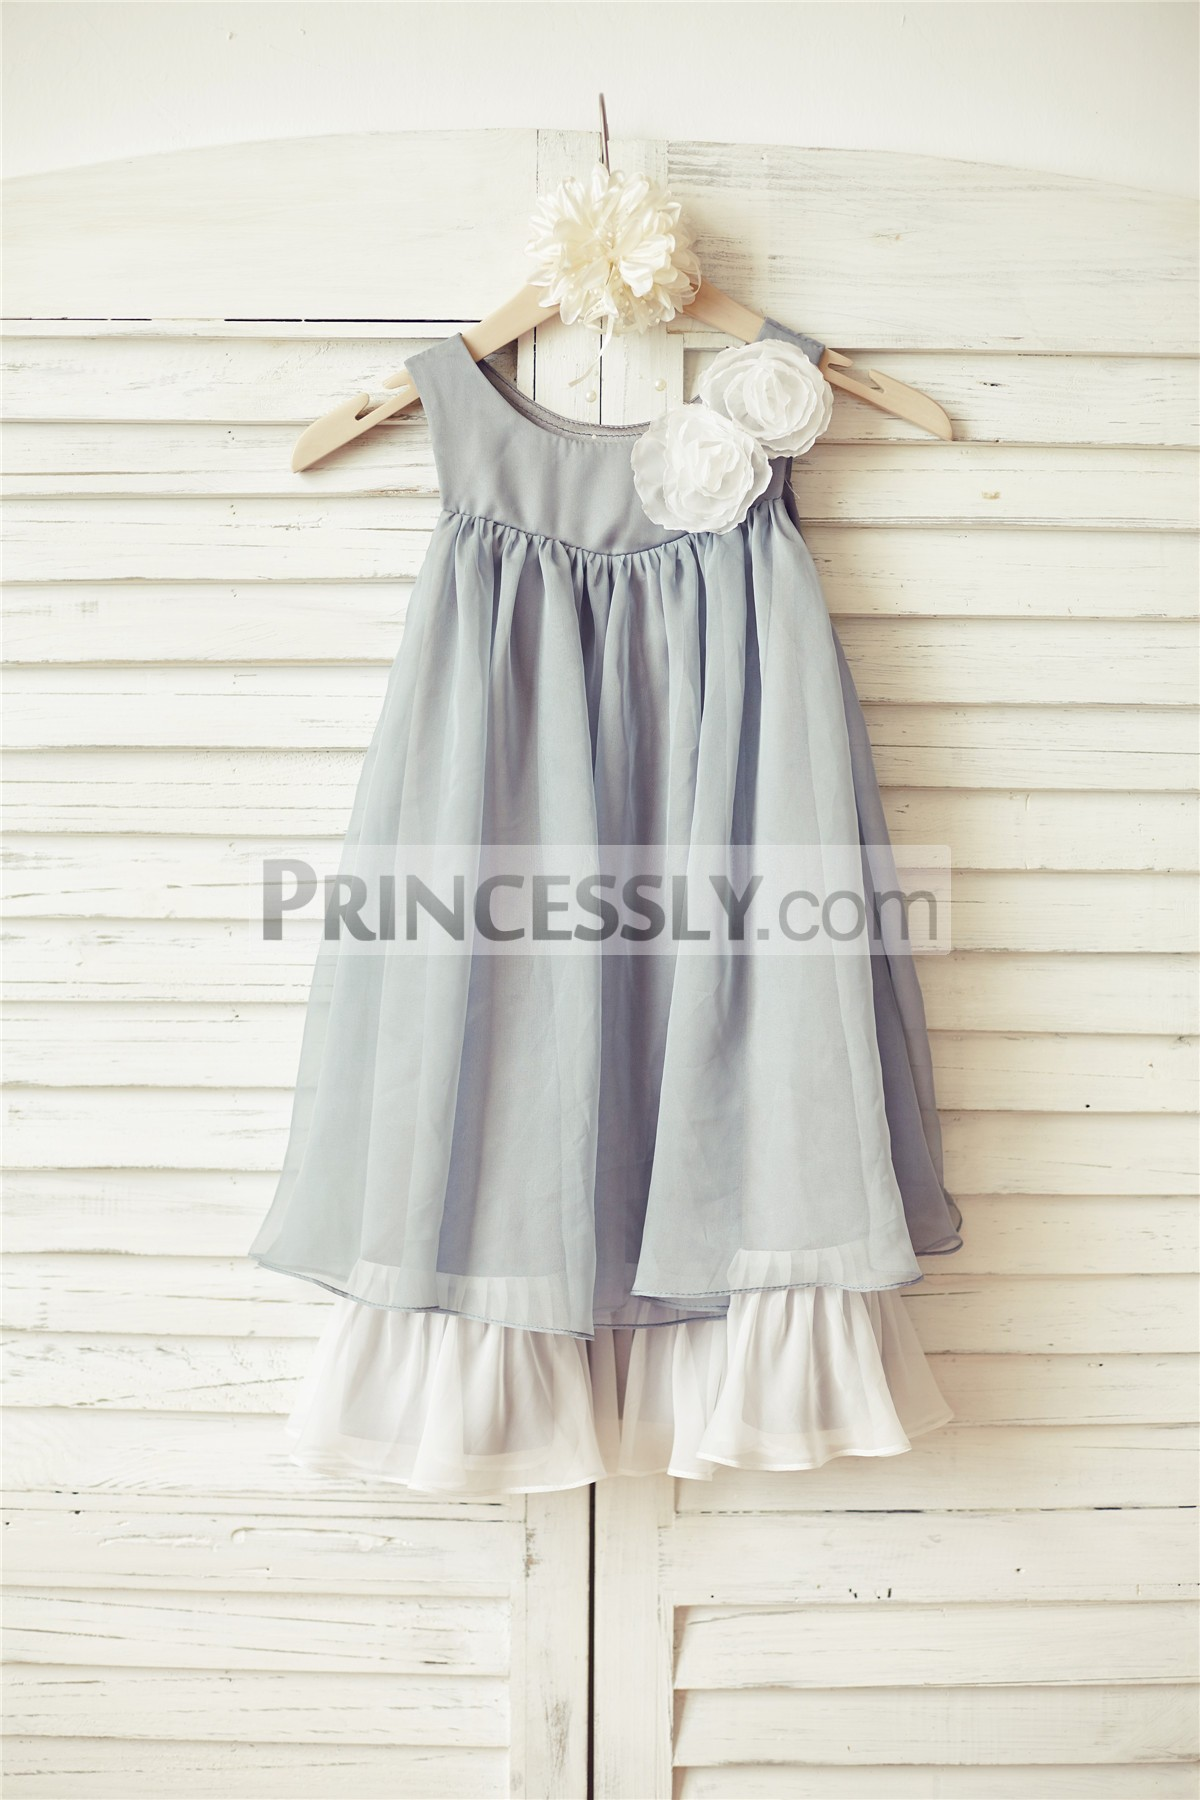 Boho style grey chiffon flower girl dress with flowers